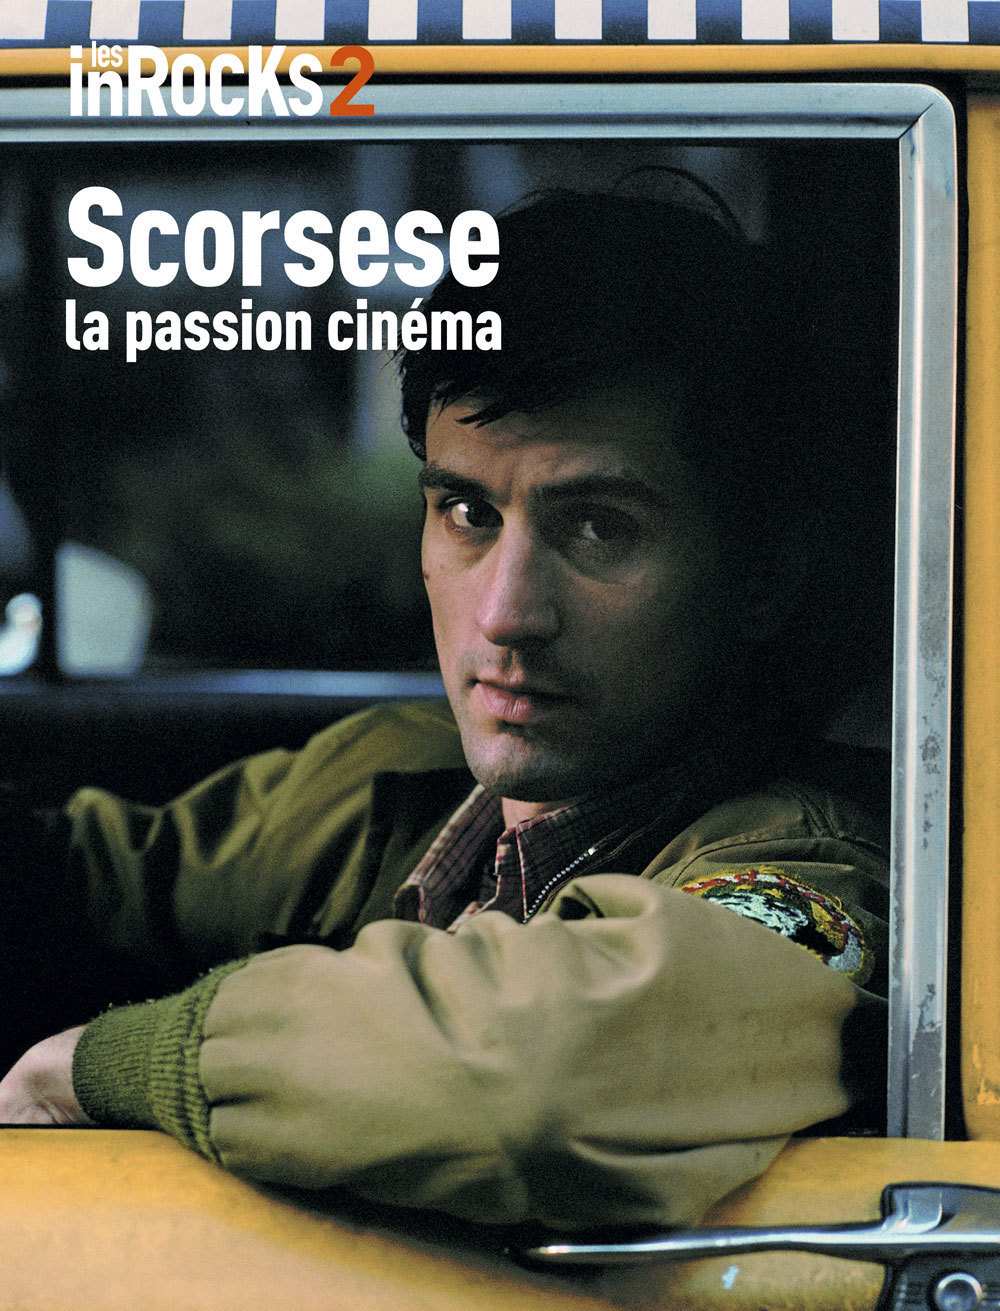 LES INROCKS HS N 65 SCORSESE  LA PASSION CINEMA  SEPTEMBRE 2015